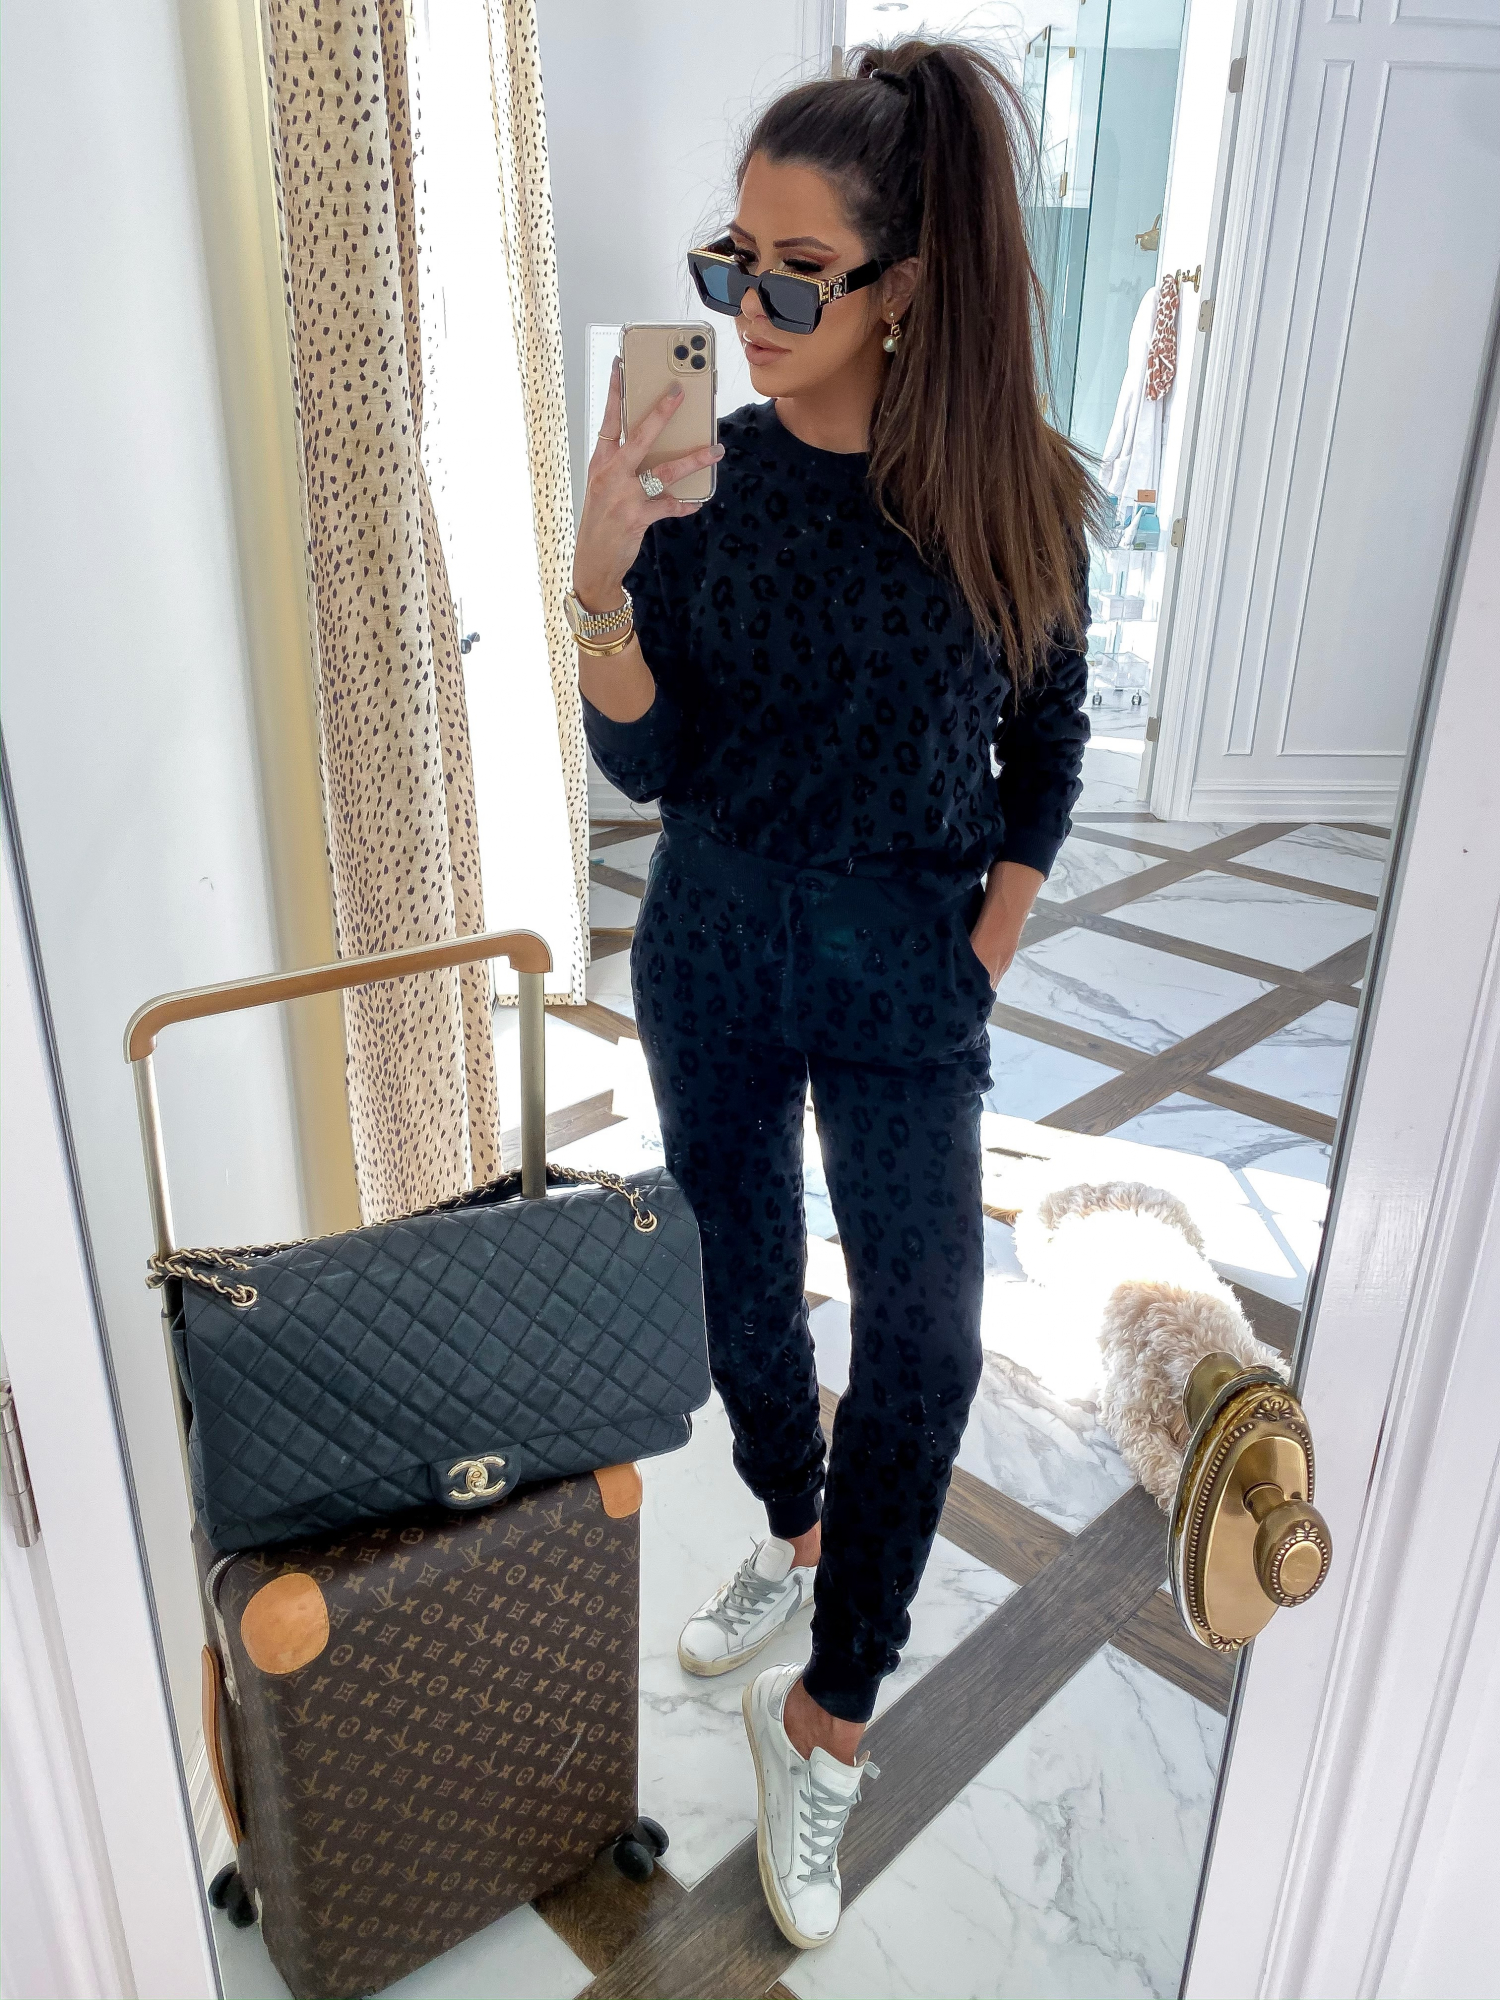 cute travel outfit, z supply leopard outfit, Chanel XXL travel bag, louis vuitton Horizon carryon, Louis vuitton 1.1 millionaire sunglasses | A YEAR IN REVIEW : MASSIVE 2019 INSTAGRAM RECAP by popular Oklahoma life and style blog, The Sweetest Thing: image of a woman taking a selfie and wearing Shopbop Z Supply The Animal Flocked Pullover, Shopbop Z Supply The Animal Flocked Joggers, CHANEL Calfskin Quilted XXL Travel Flap Bag Black, and GOLDEN GOOSE Superstar Low-Top Sneakers.